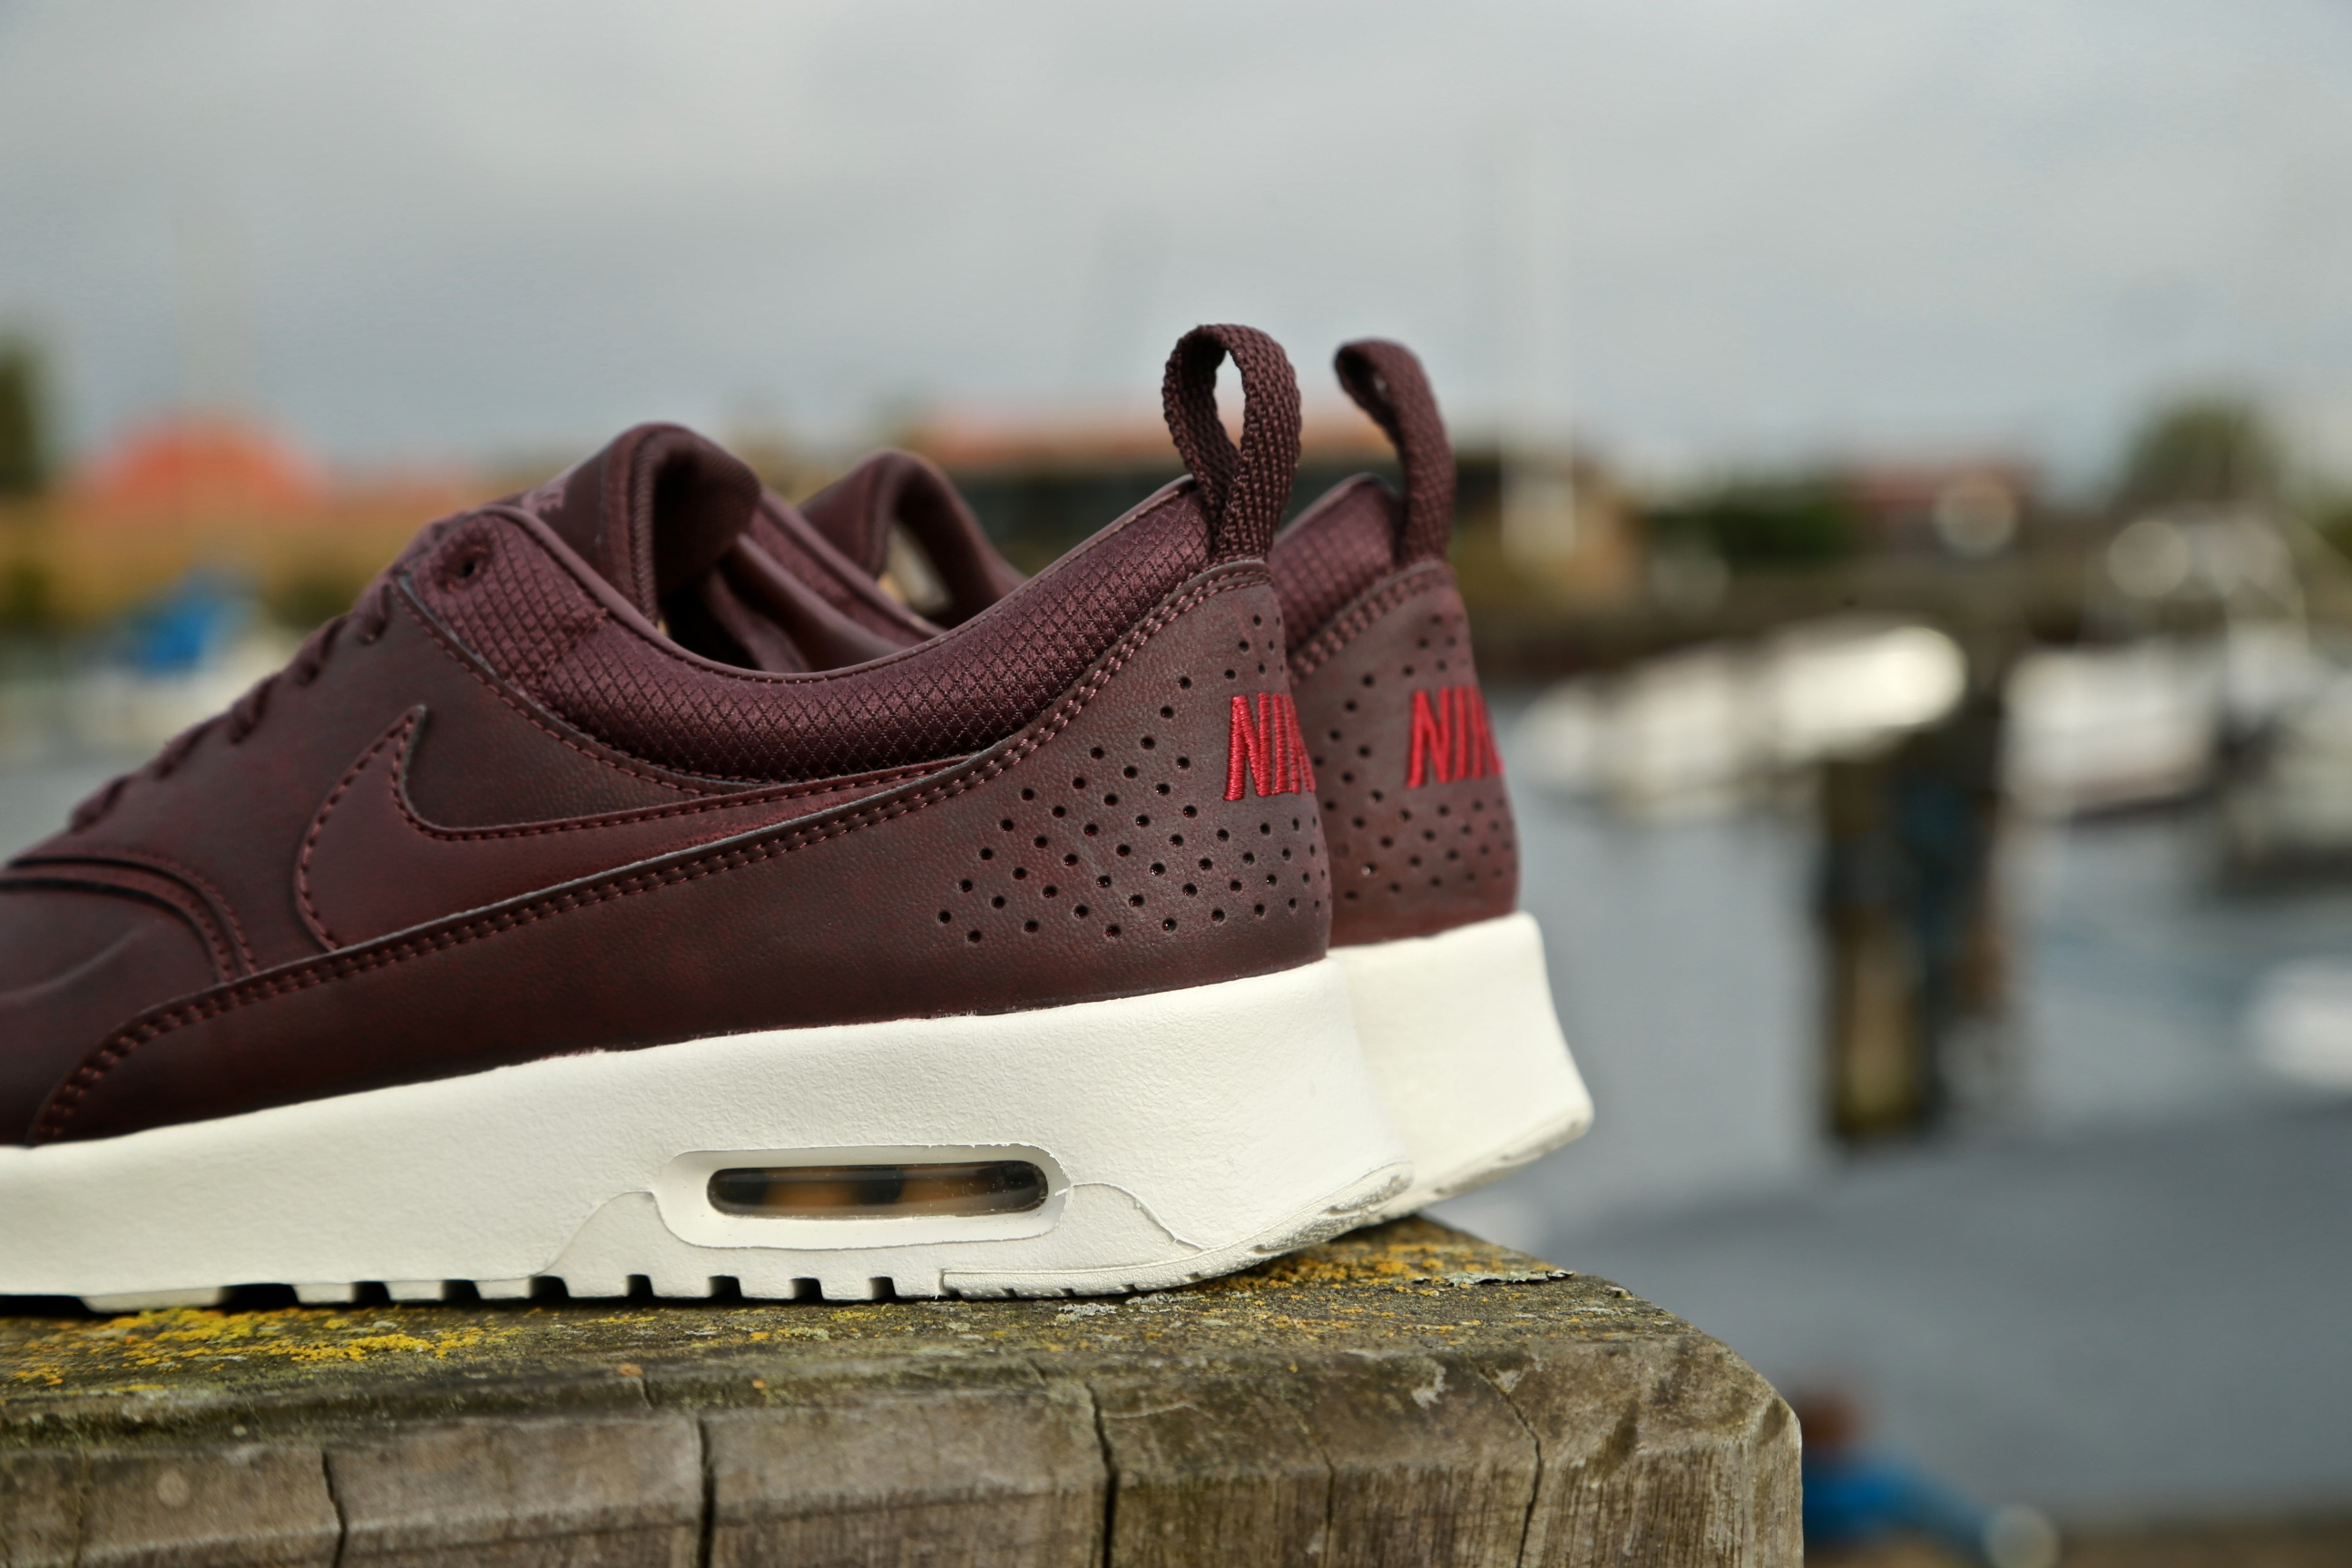 Nike Air Max Thea Moutarde tissages de